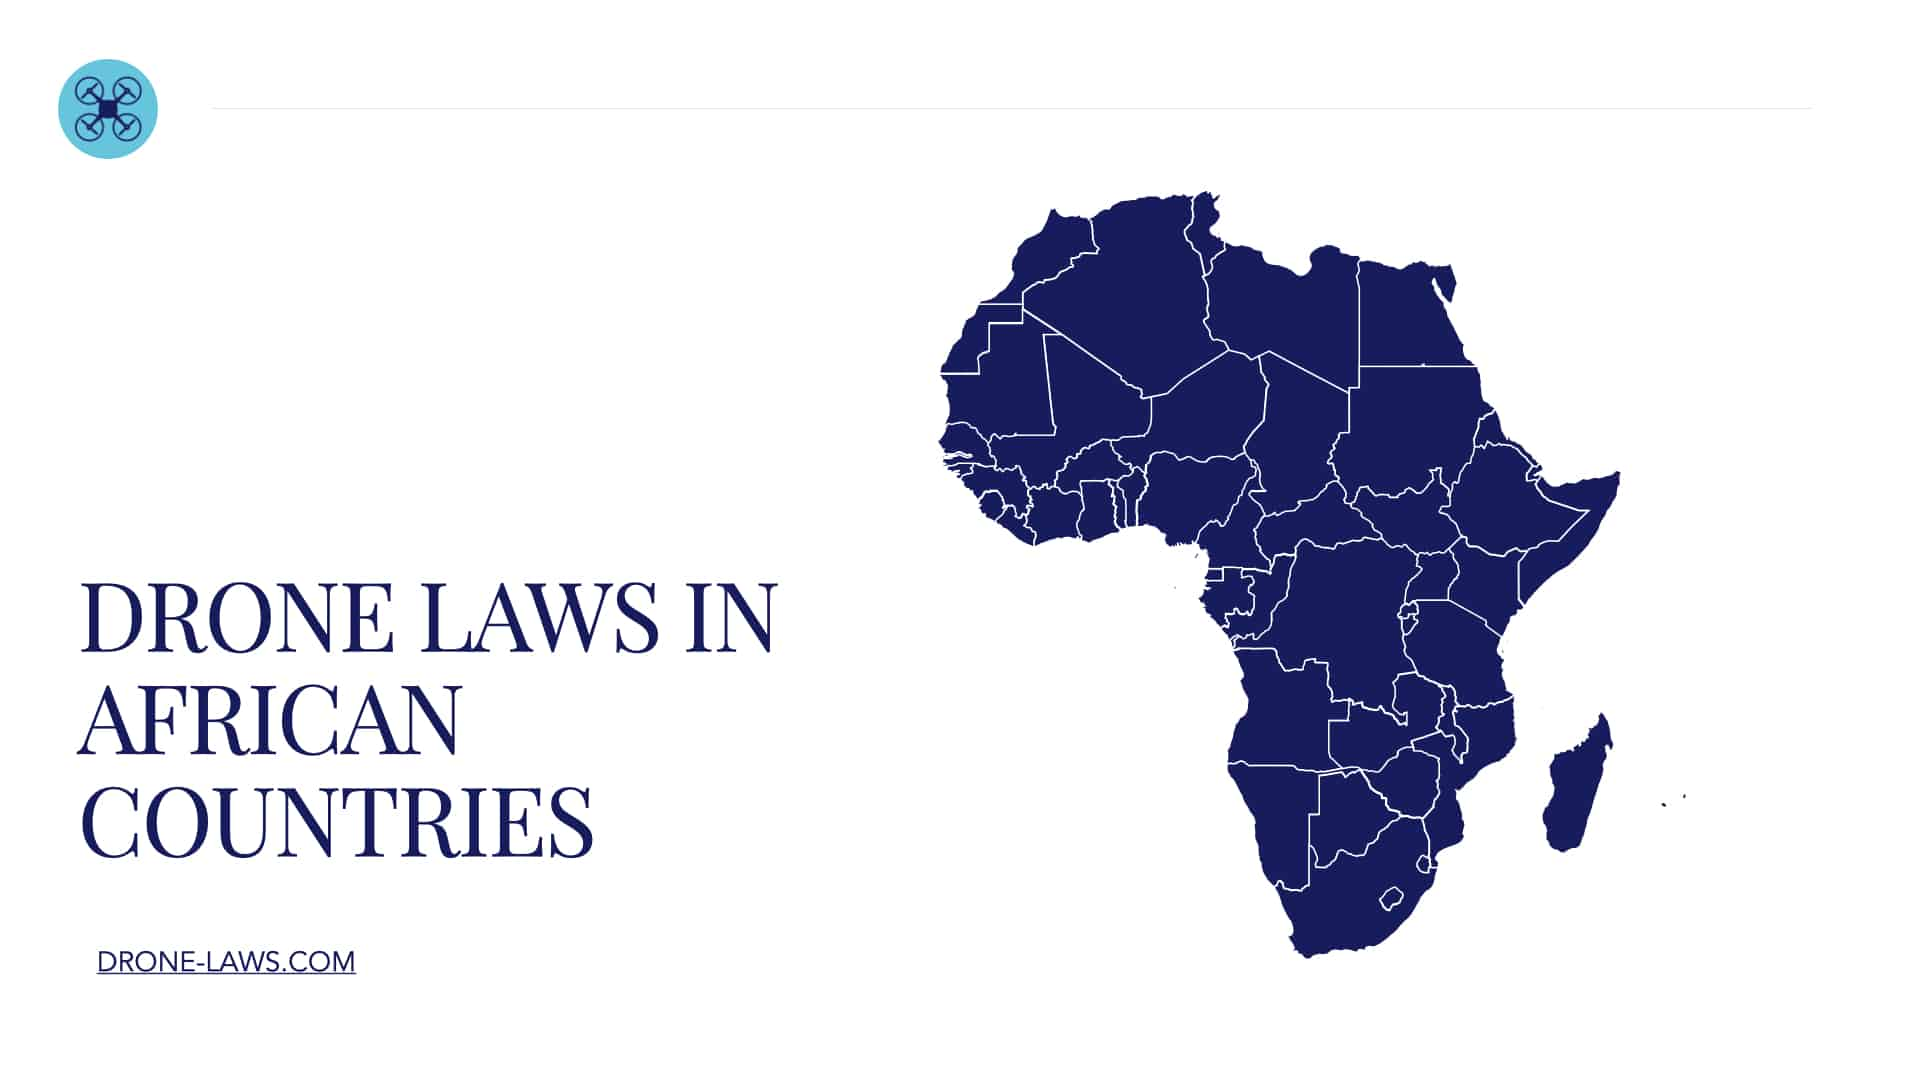 Drone Laws in African Countries